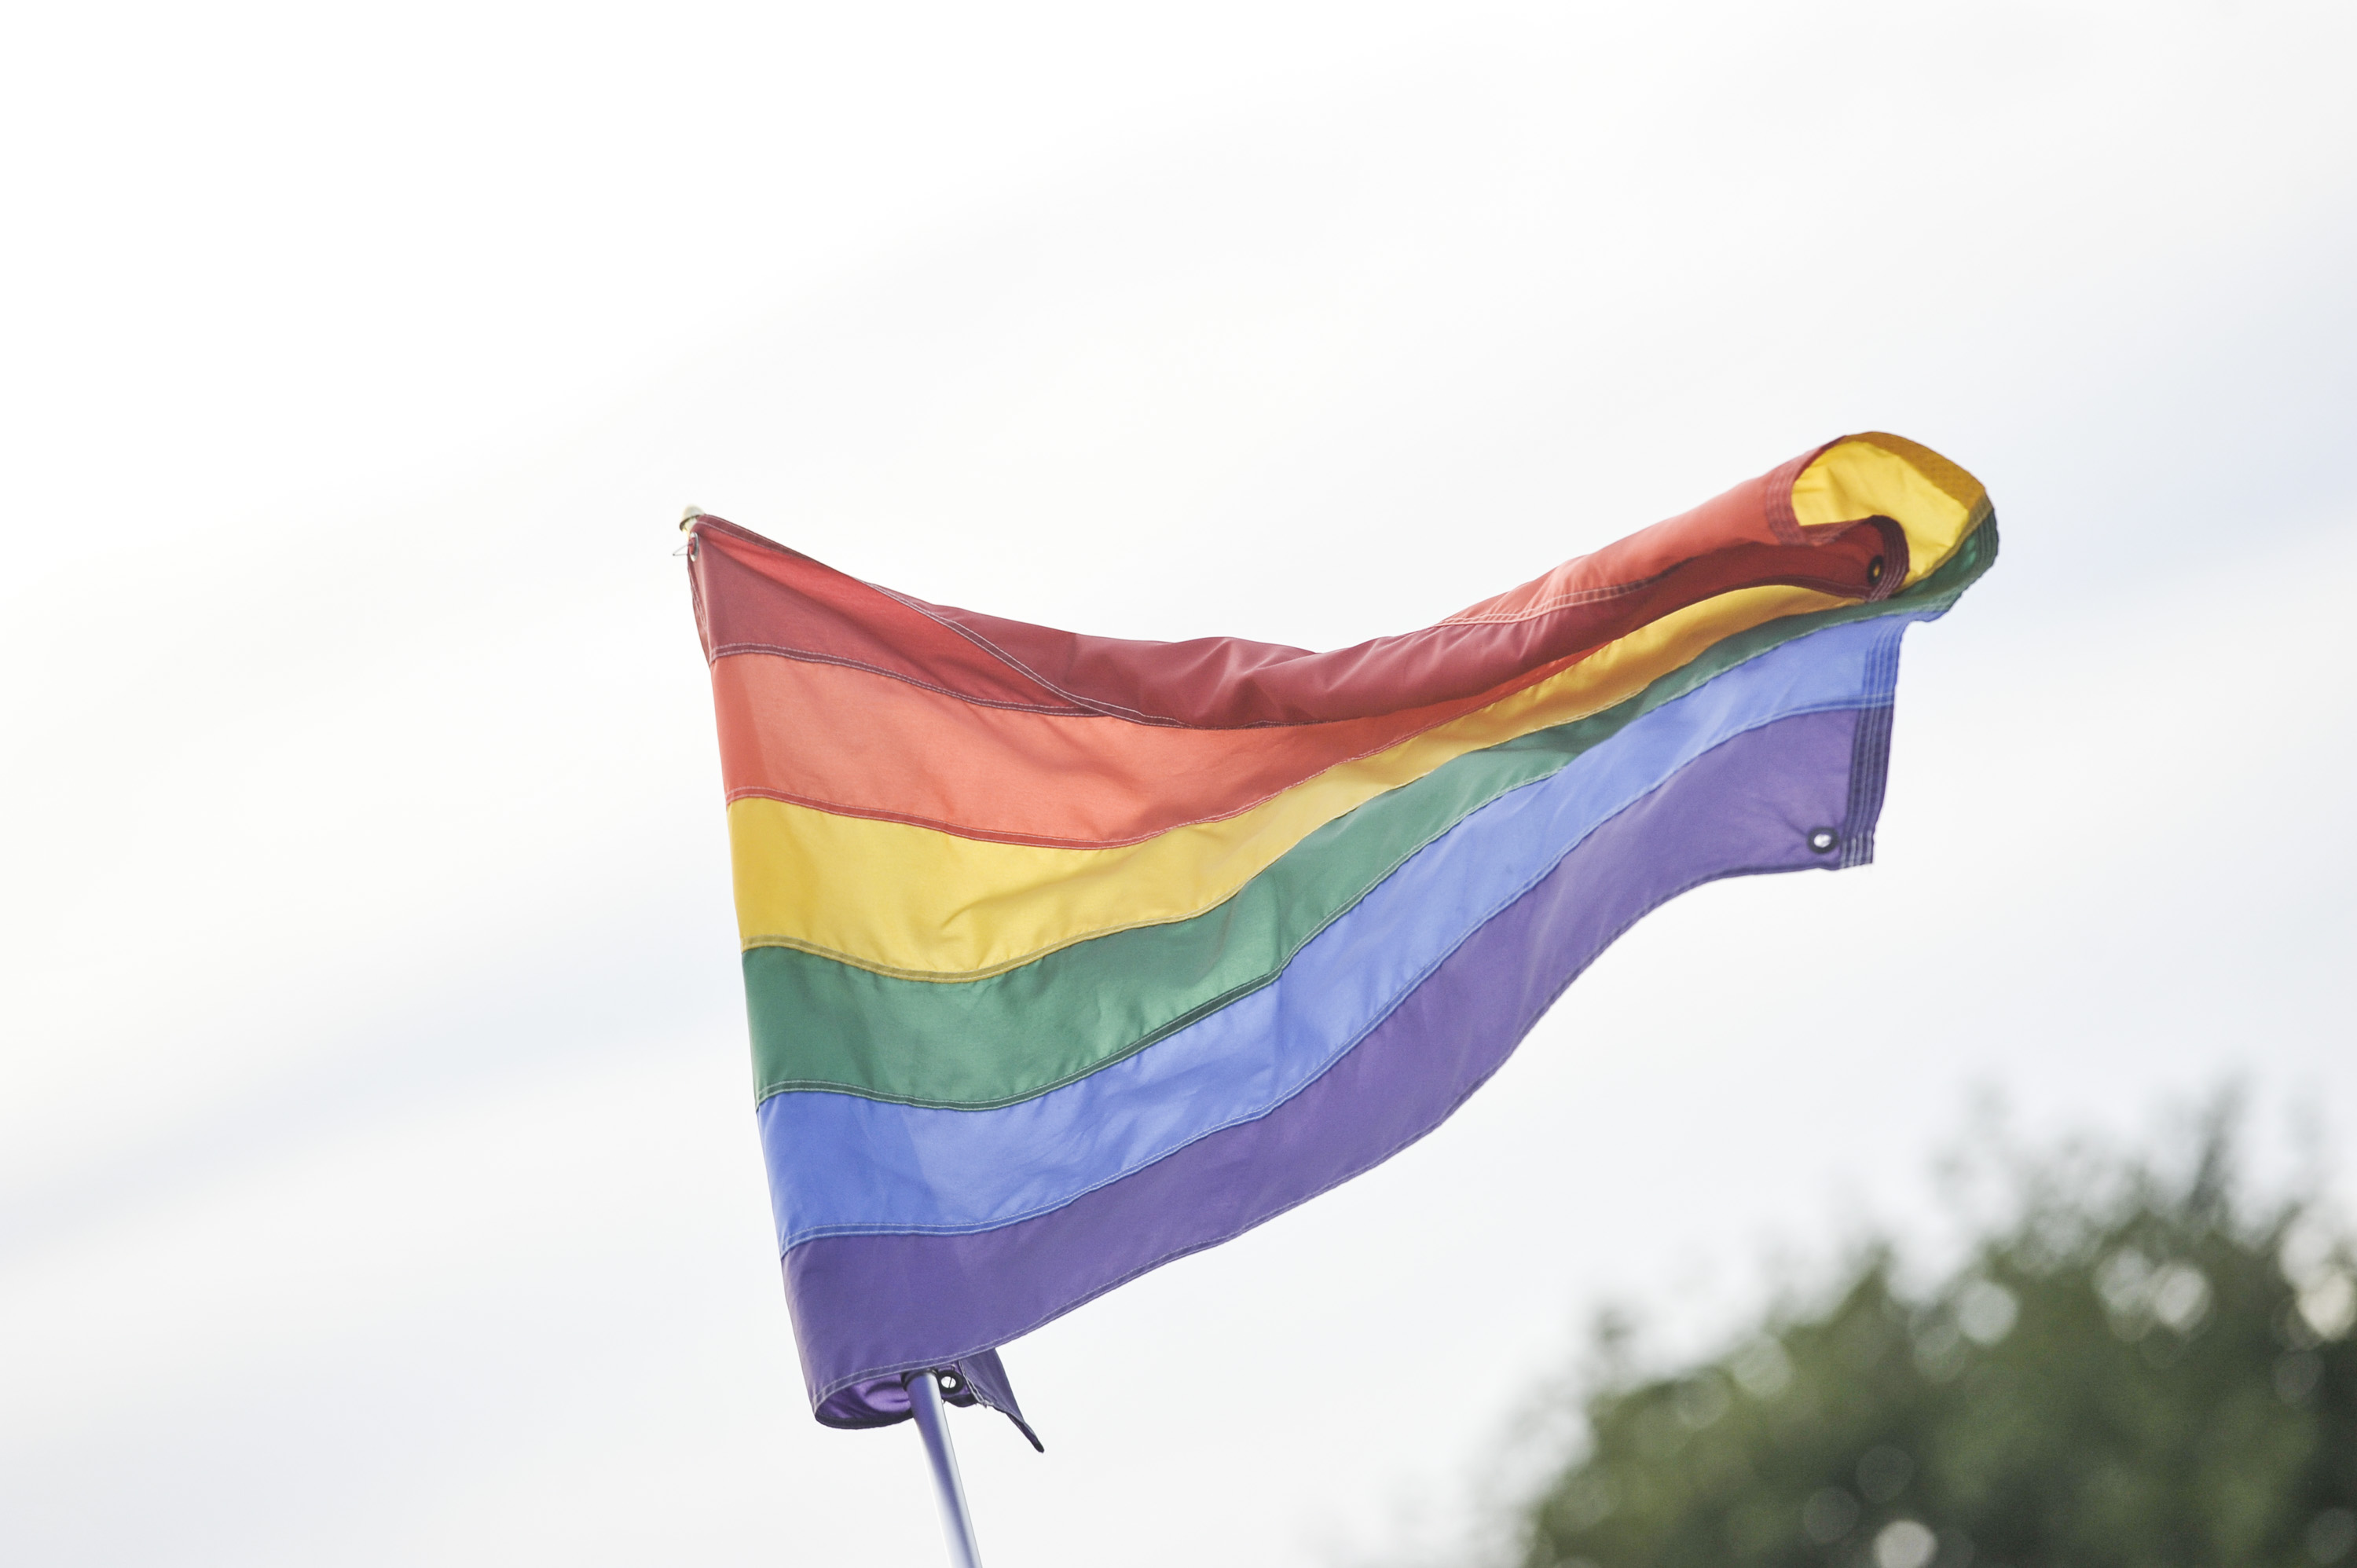 The rainbow flag, commonly the gay pride flag and LGBT pride flag, is seen during the 2016 Electric Zoo Festival at Randall's Island on September 2, 2016 in New York City.